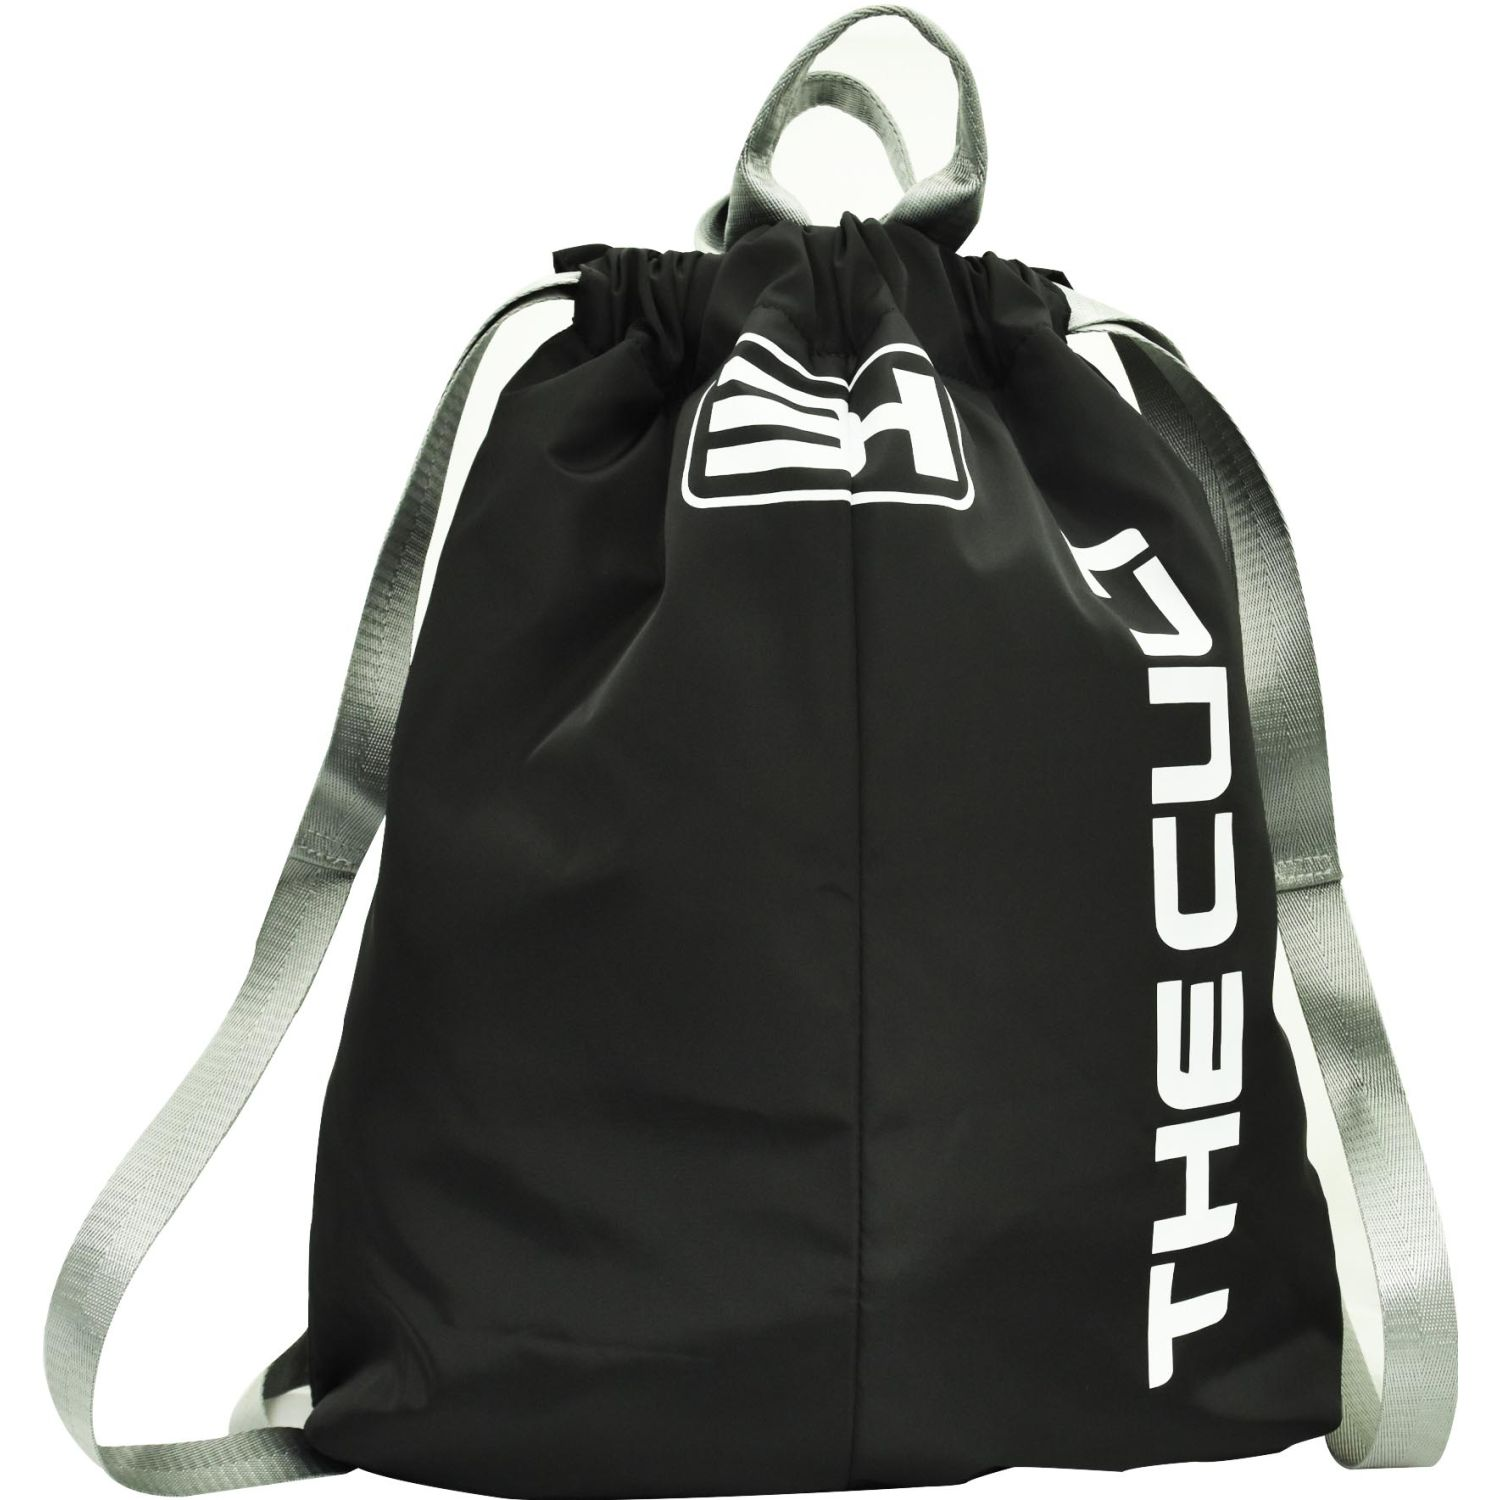 The Cult Bolso Deportivo, En Polyester Negro Mochilas multipropósitos